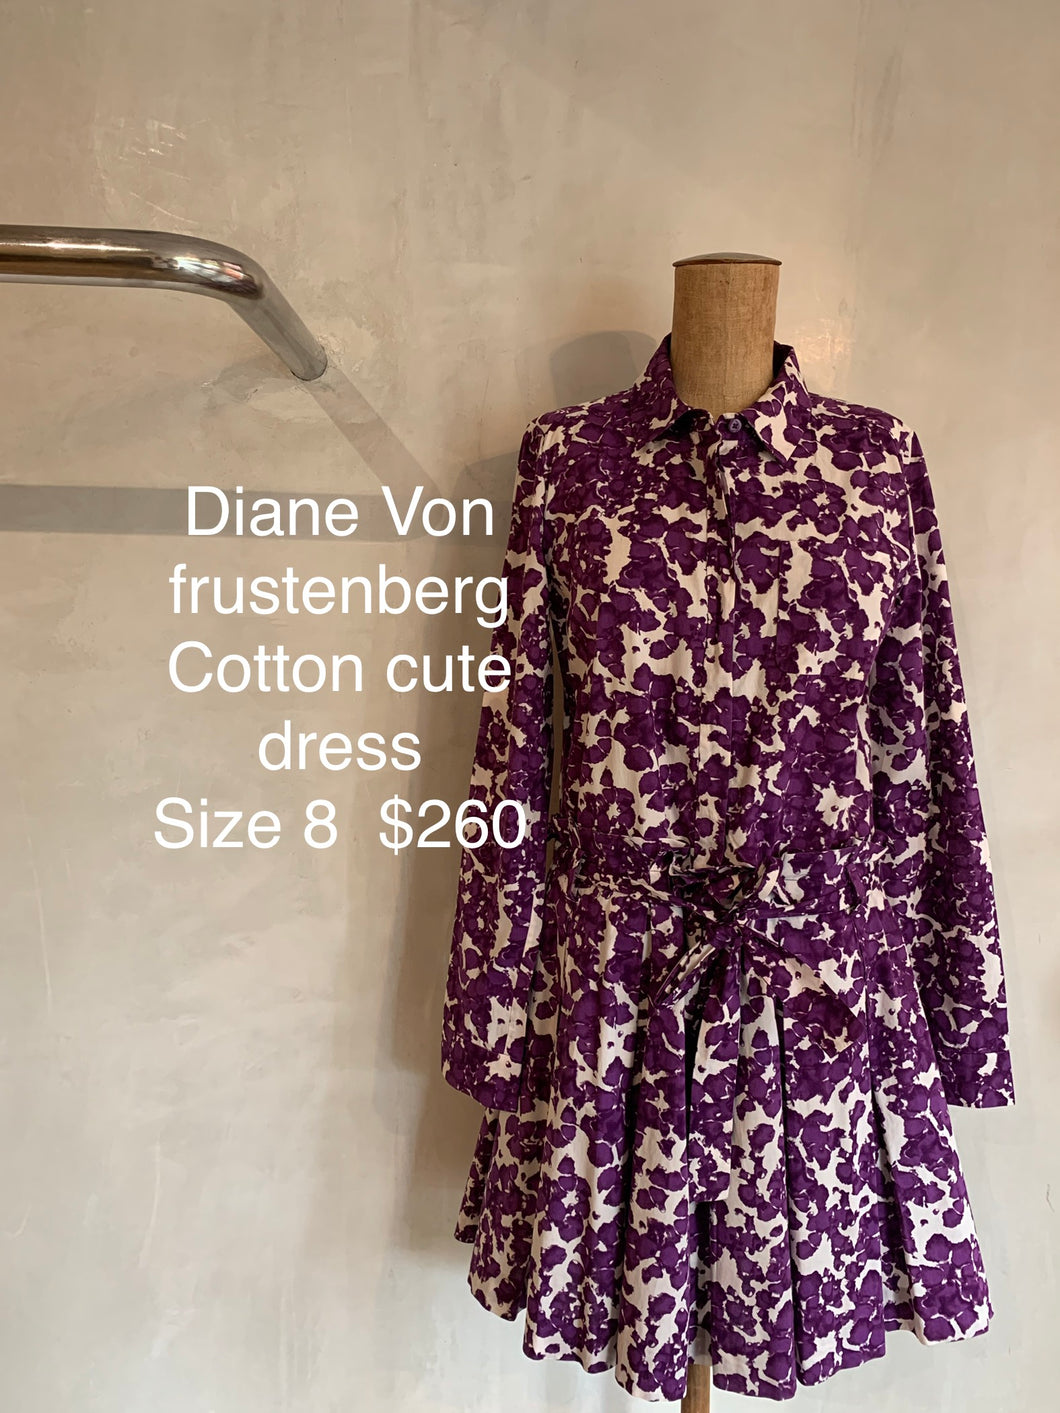 Diane Von Frustenberg dress